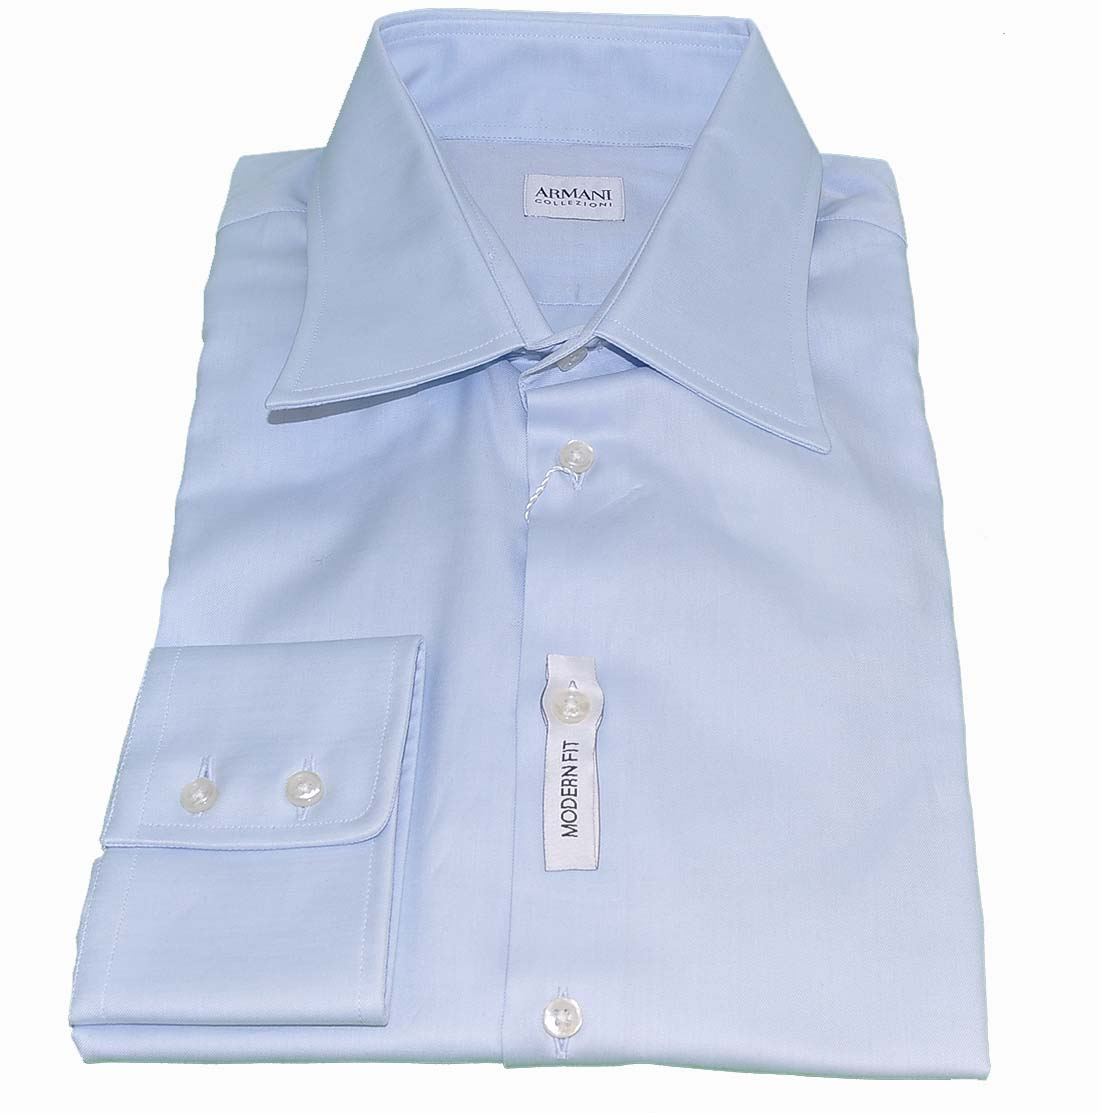 Armani Collezioni Blue Cotton Dress Shirt